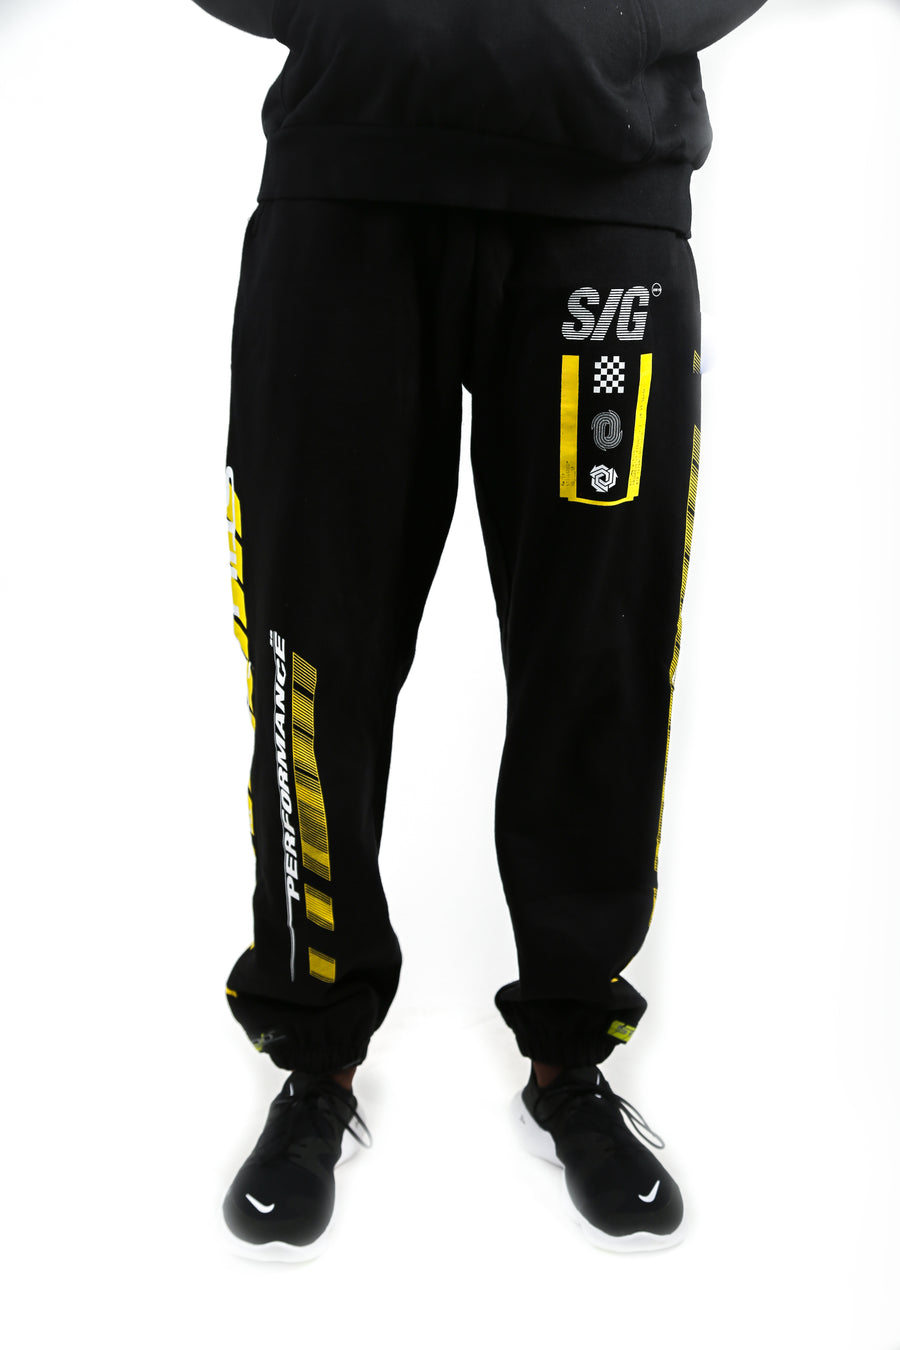 Fast Sweatpants Black / S | Still Good